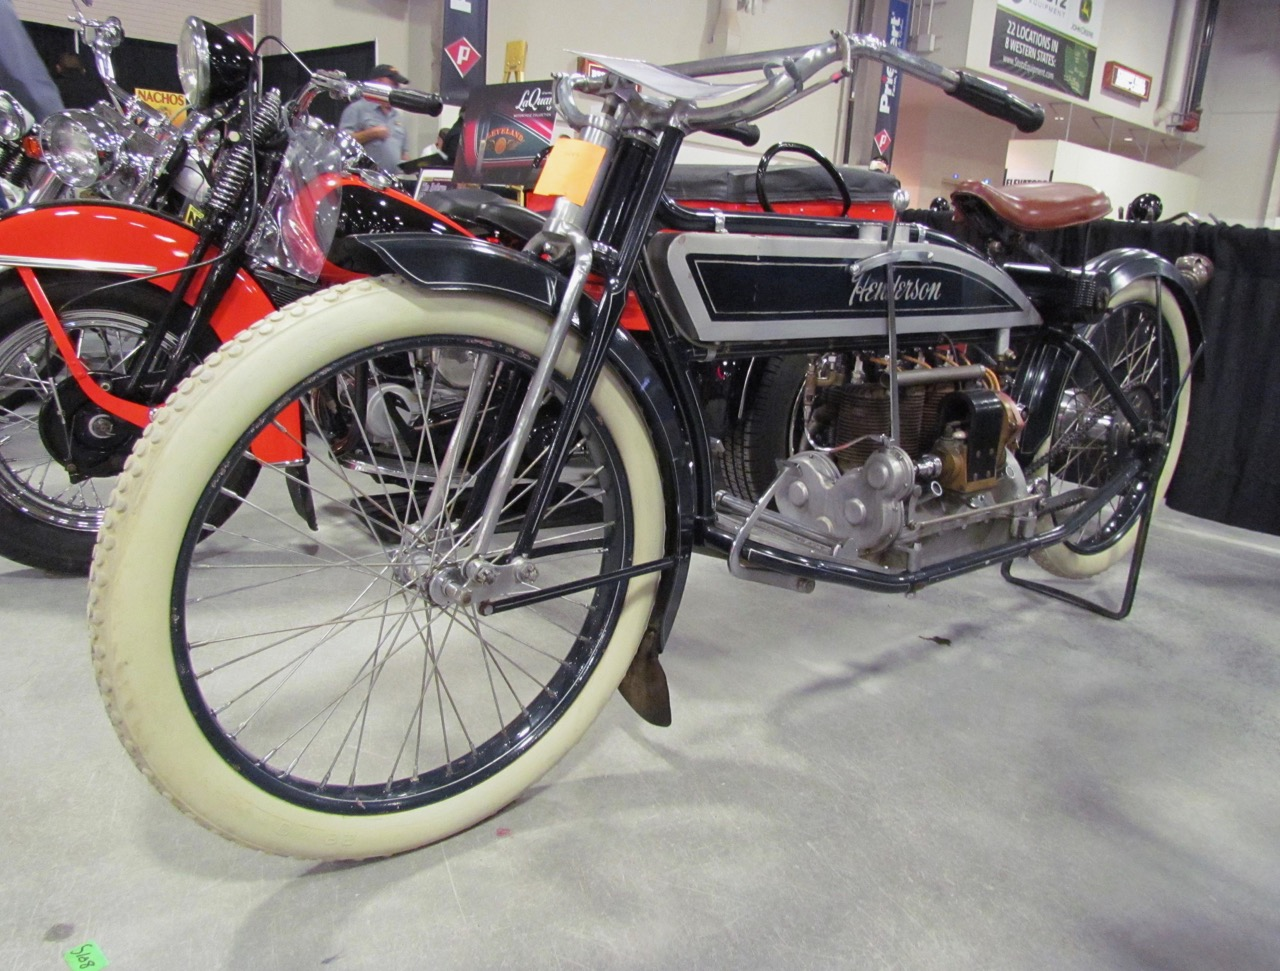 Henderson motorcycles swept the top-three sales